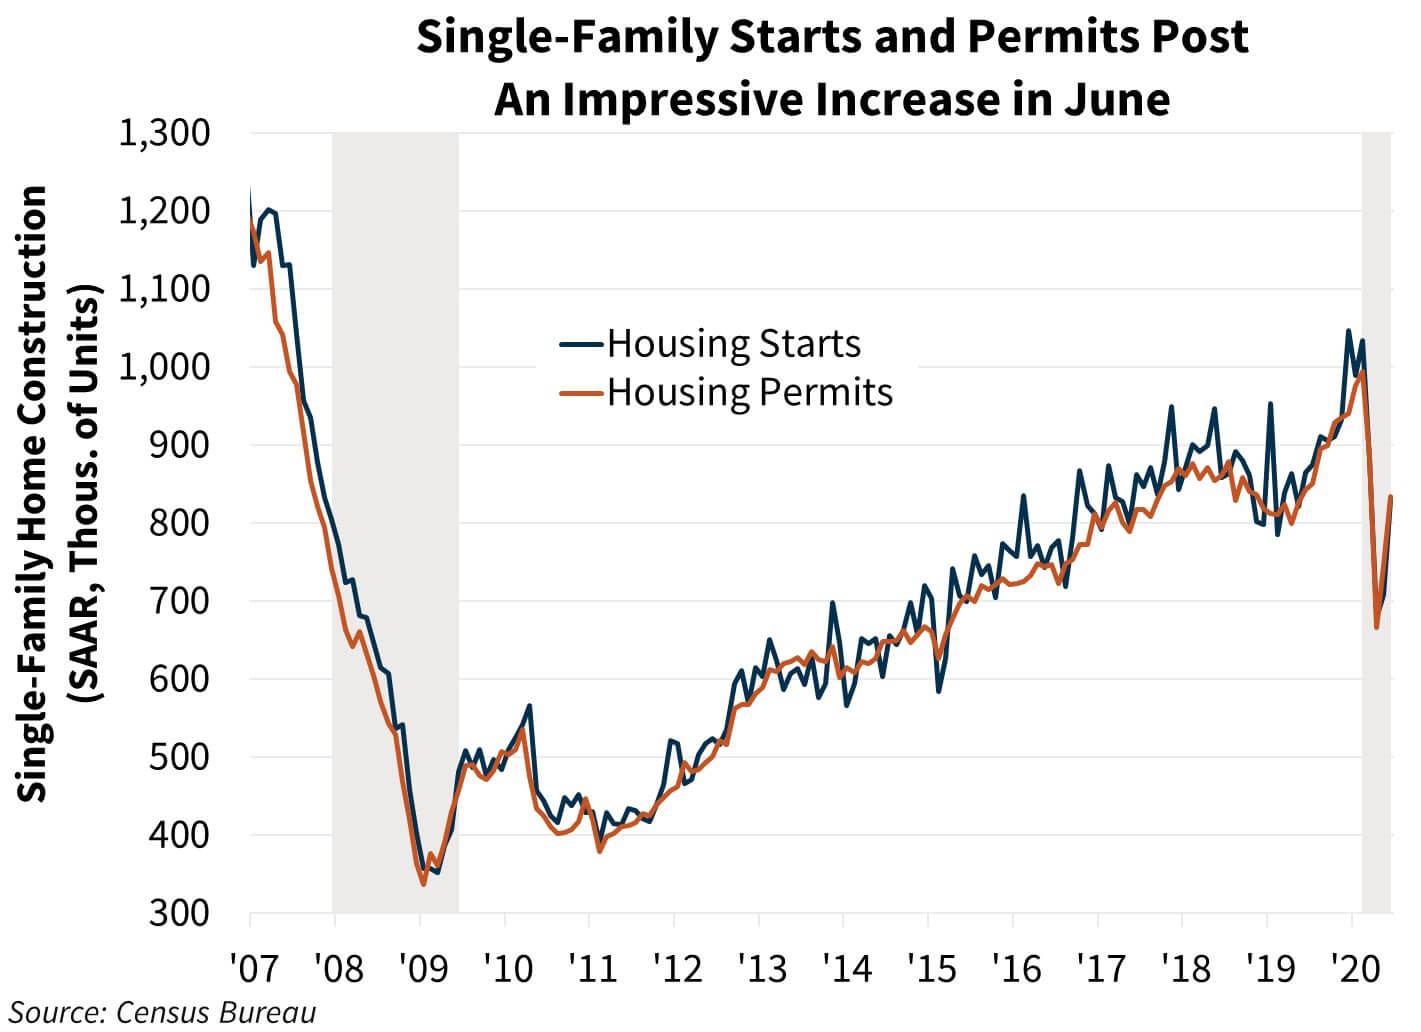 Single family starts and permits improve in June 2020